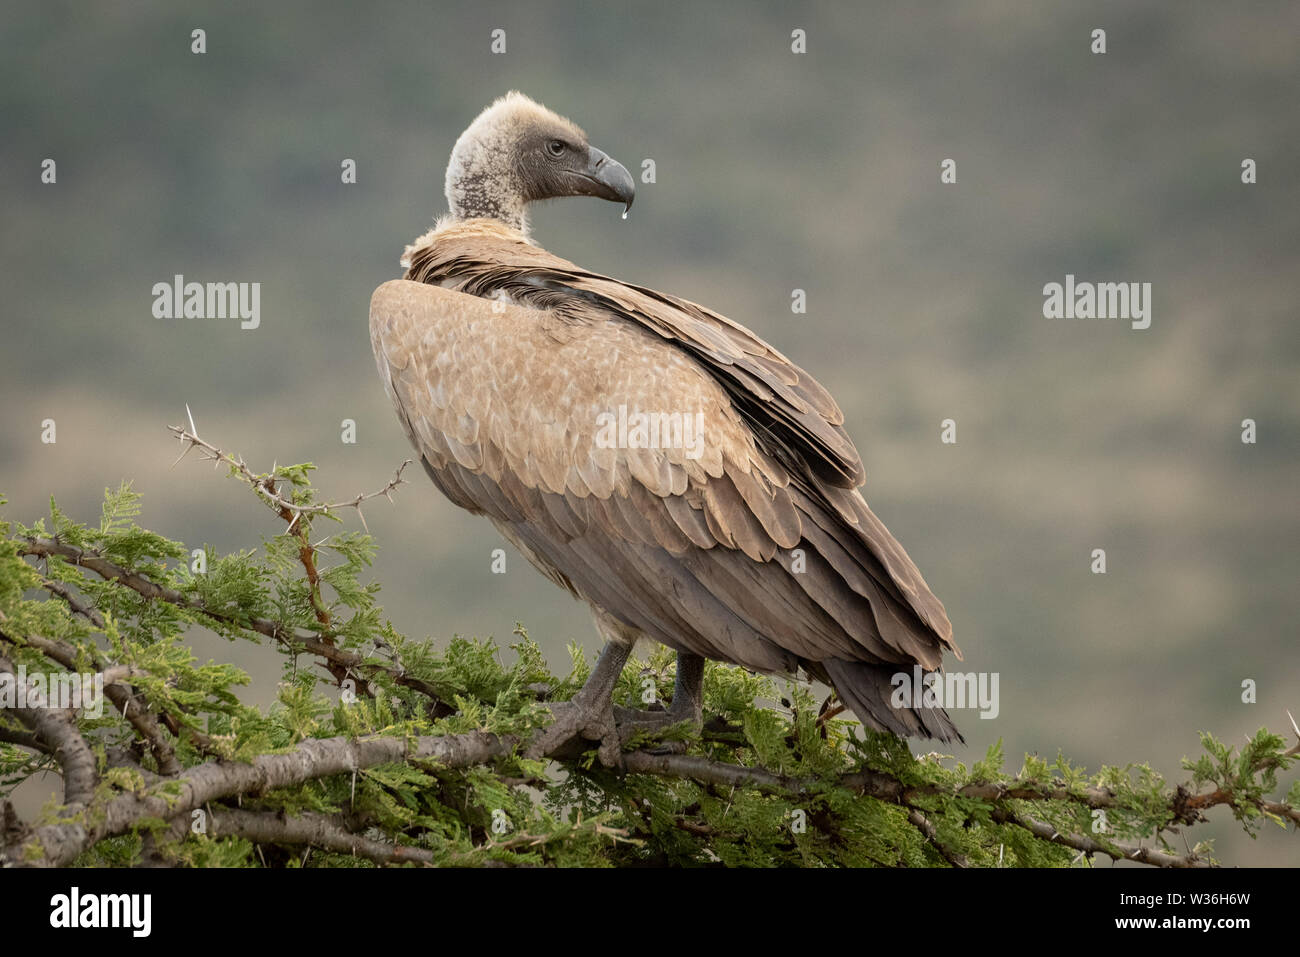 African white-backed vulture on branch looking back - Stock Image